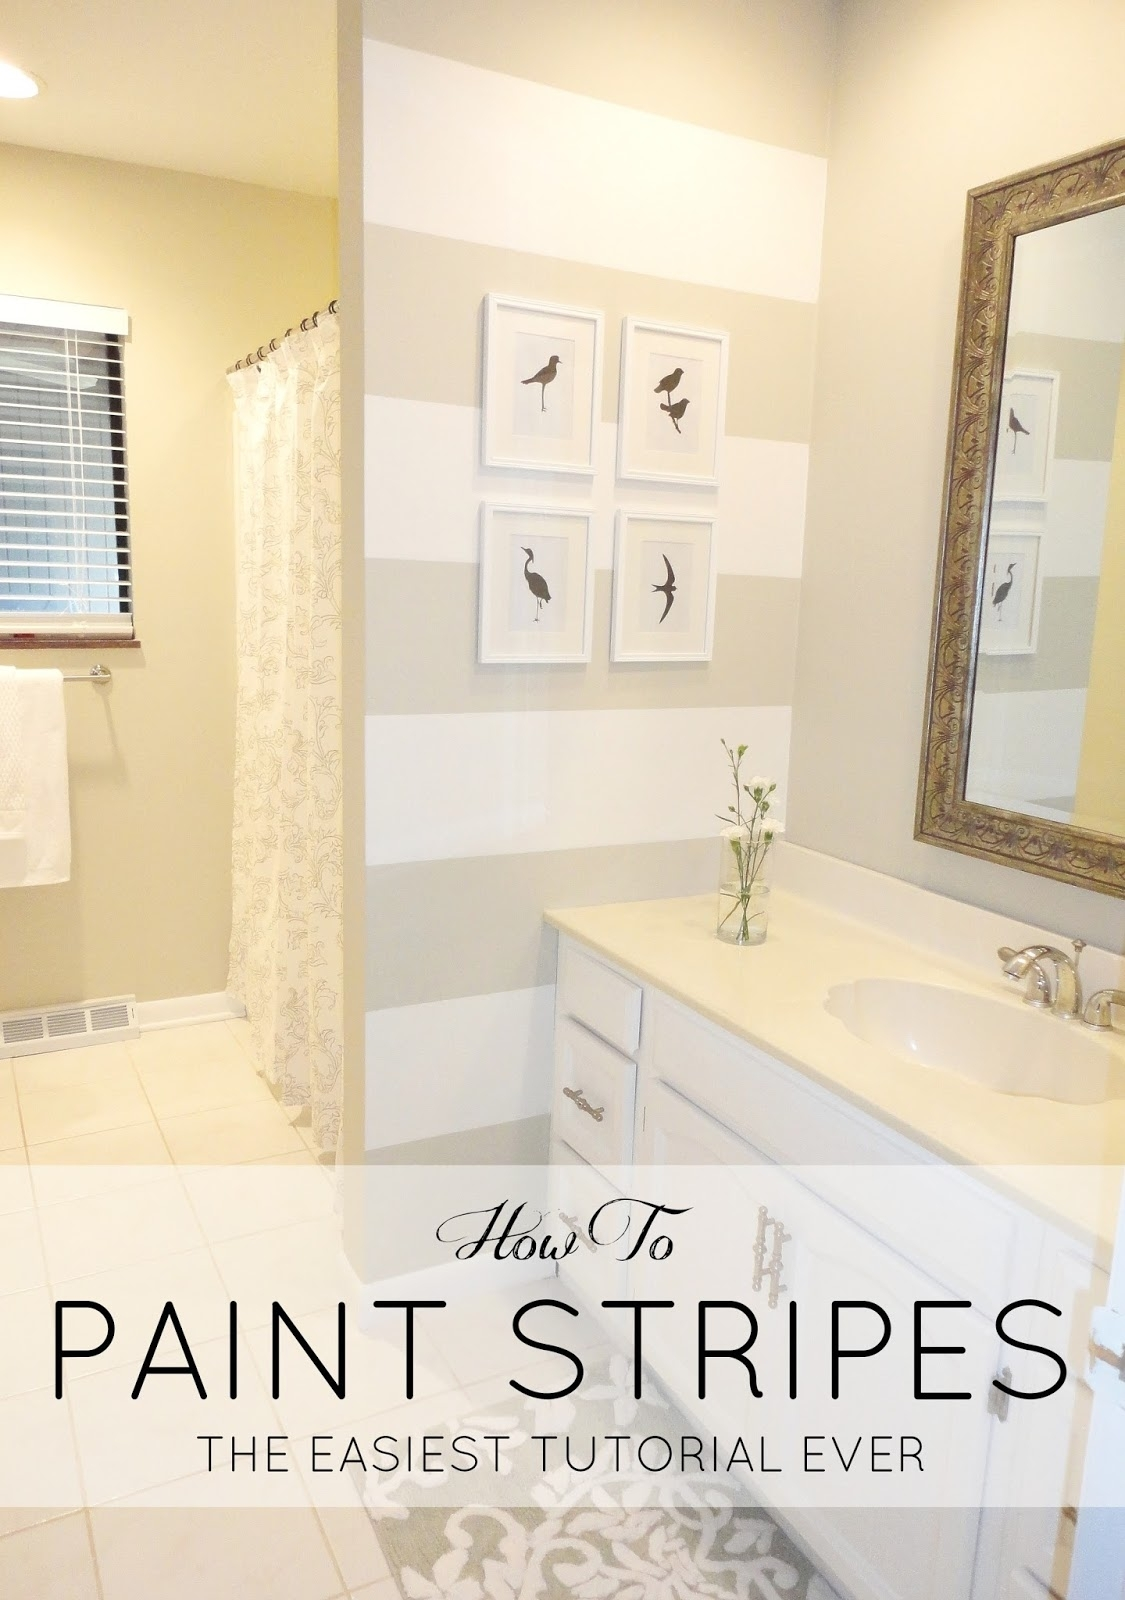 Livelovediy: How To Paint Stripes: The Easiest Tutorial Ever! Intended For Most Recently Released Stripe Wall Accents (View 9 of 15)